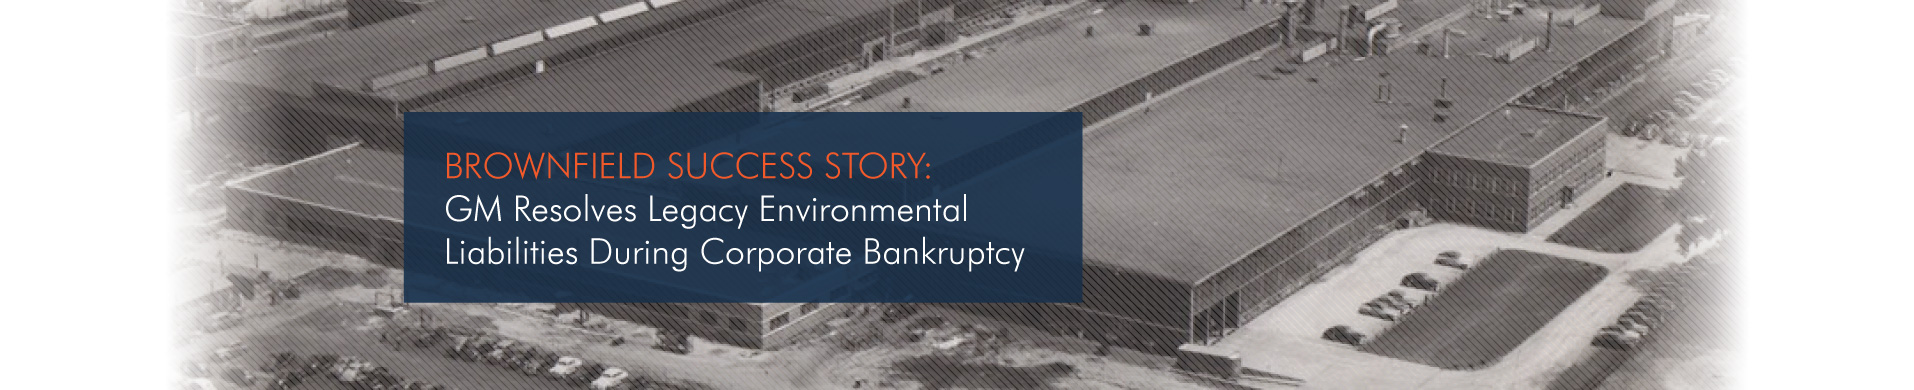 Brownfield Success Story